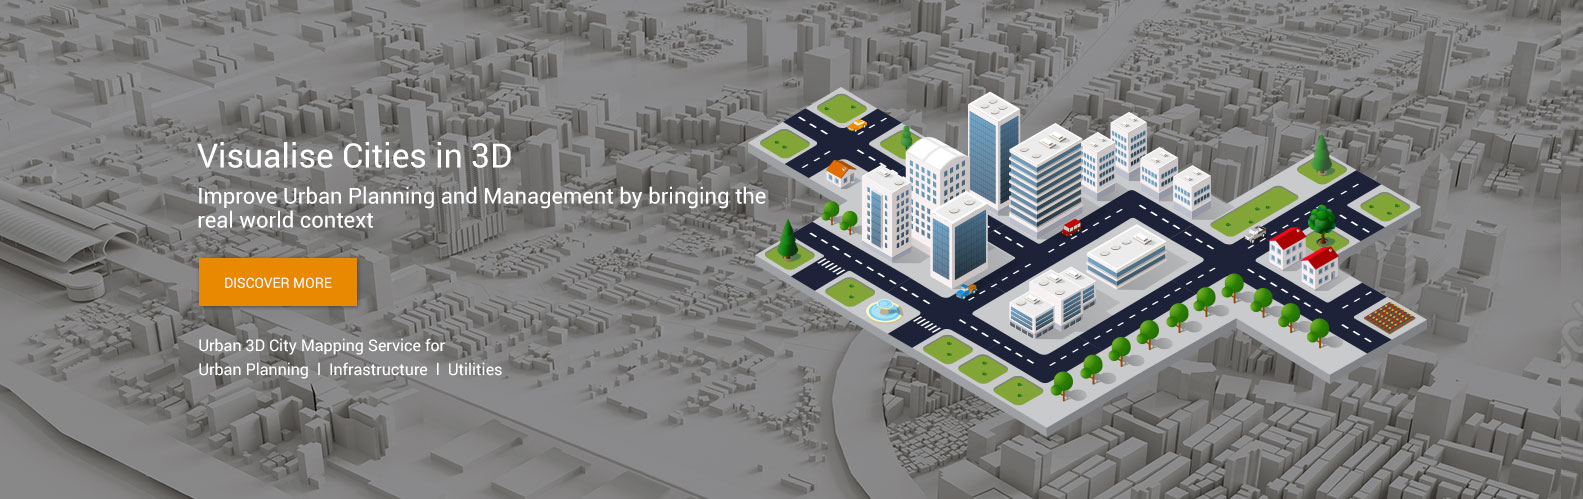 Genesys - Pioneer in providing Advanced Mapping, Survey and